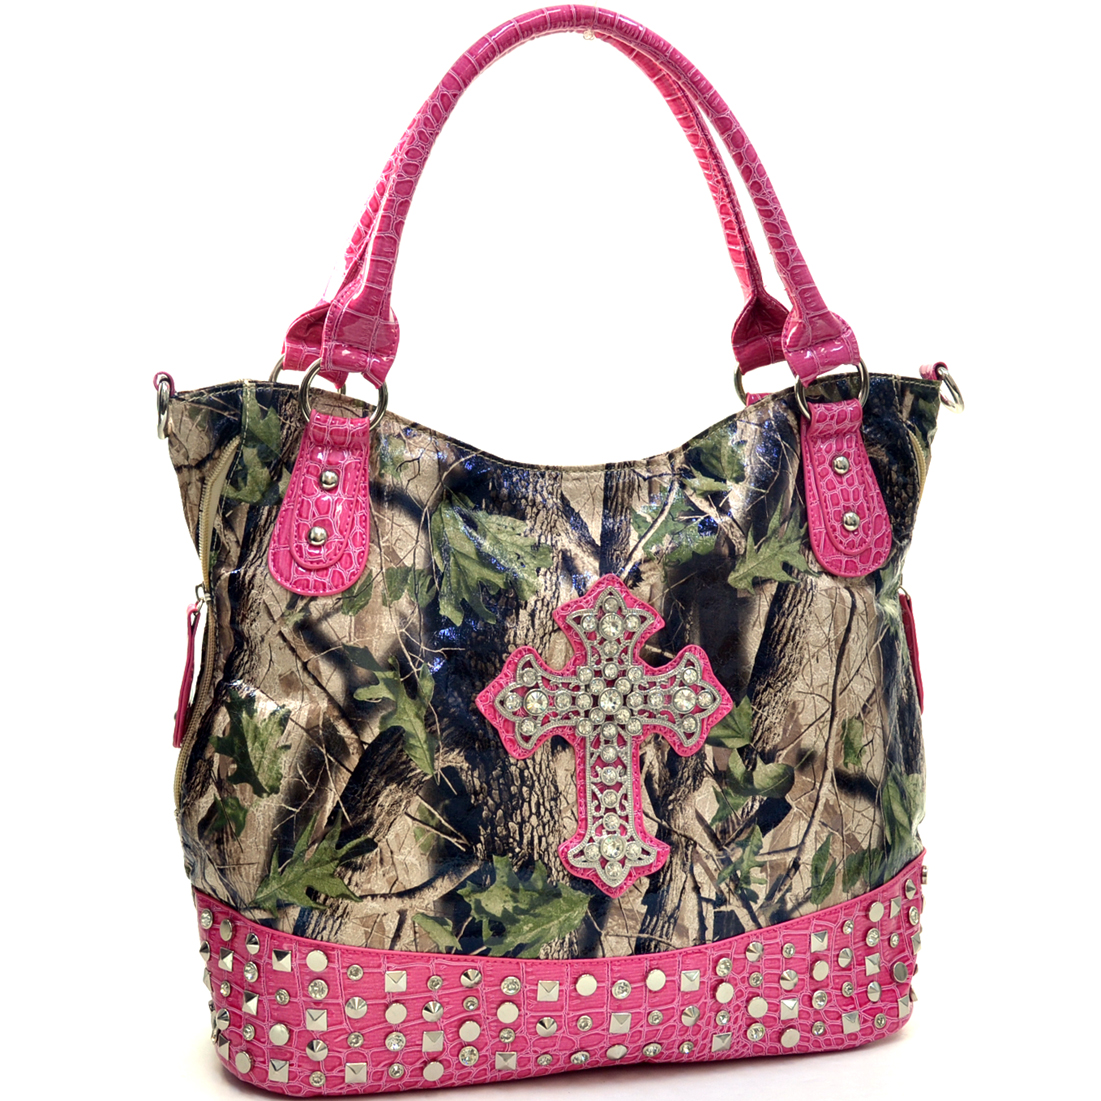 Faux Patent Camo Rhinestone Cross Pyramid Studded Tote